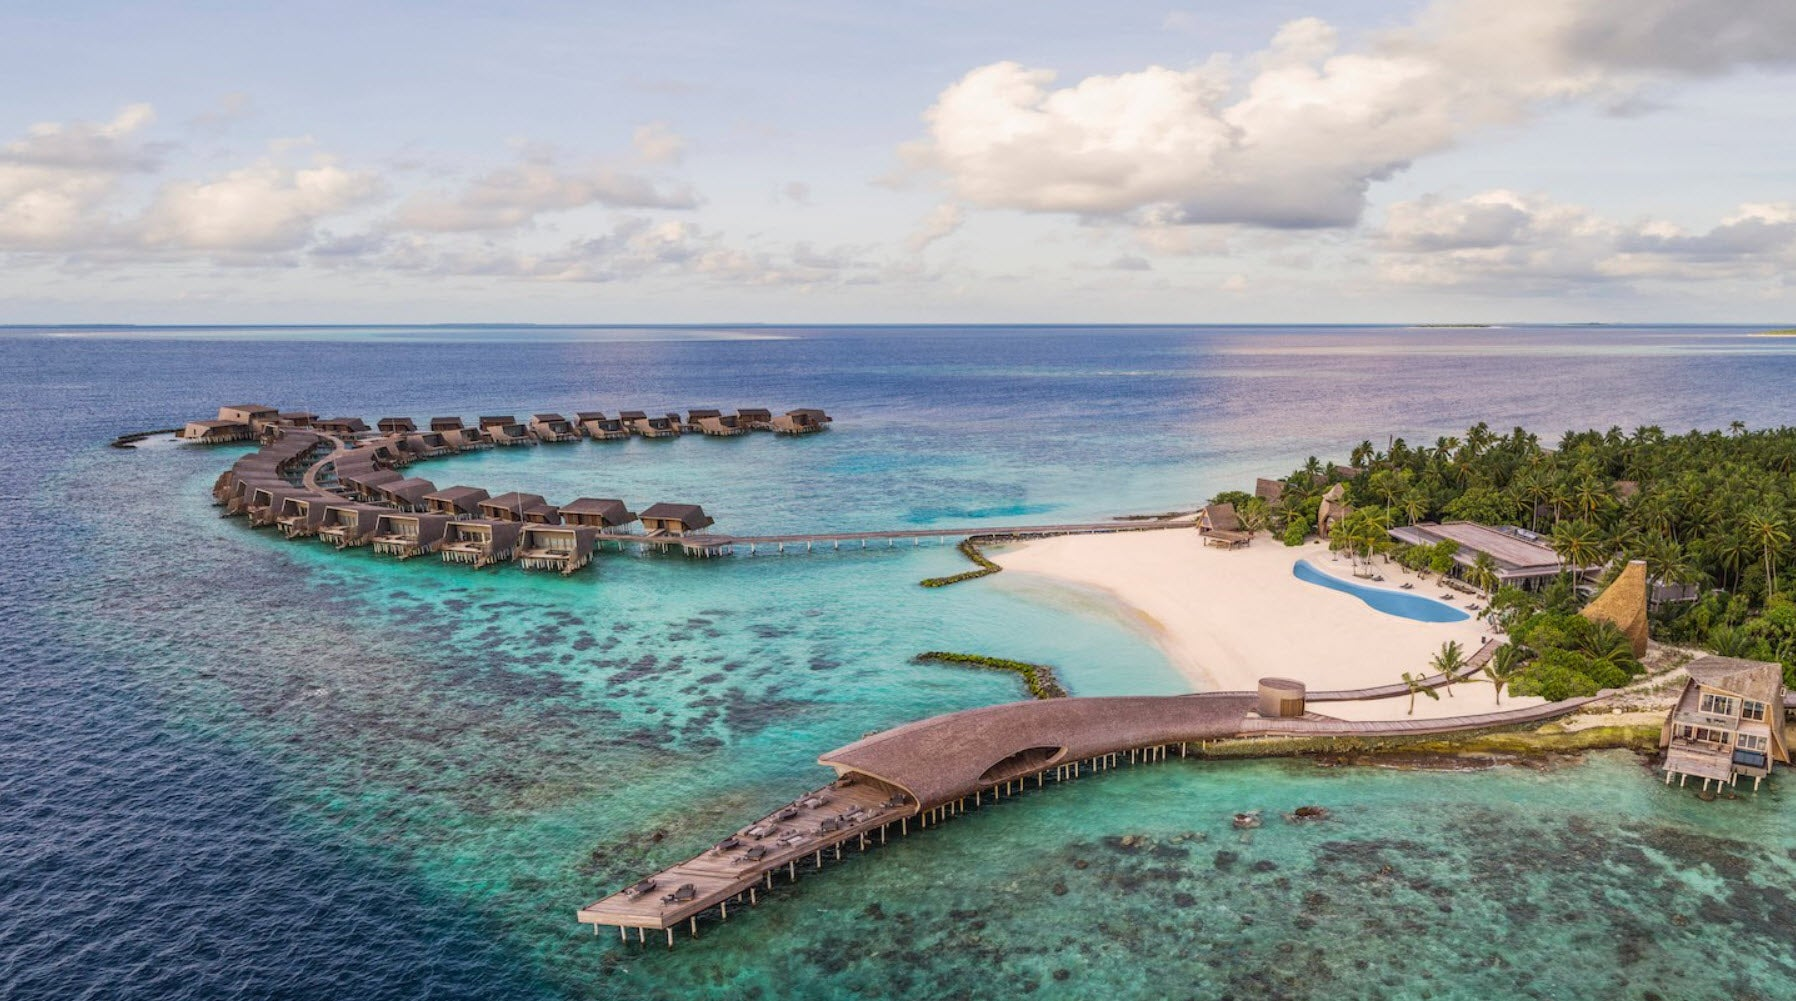 NEW! 5 Steps to Book Amazing All-Suite Starwood Hotels Online – Even If You Don't Have Enough Marriott Points